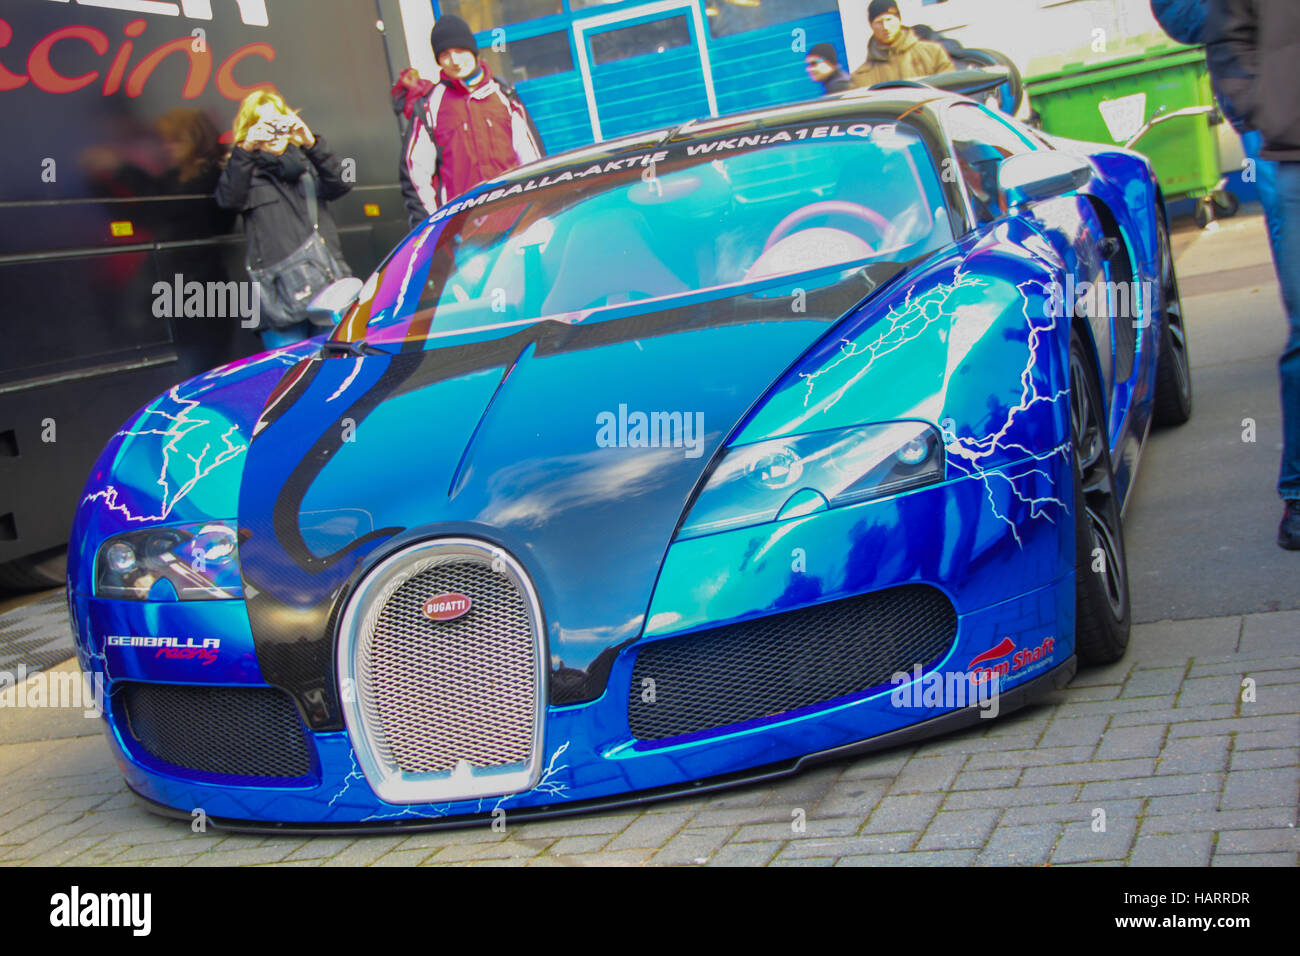 541b195eaa74 Blue Bugatti Veyron 16.4 show car at motorsport event in public area with  people taking photos